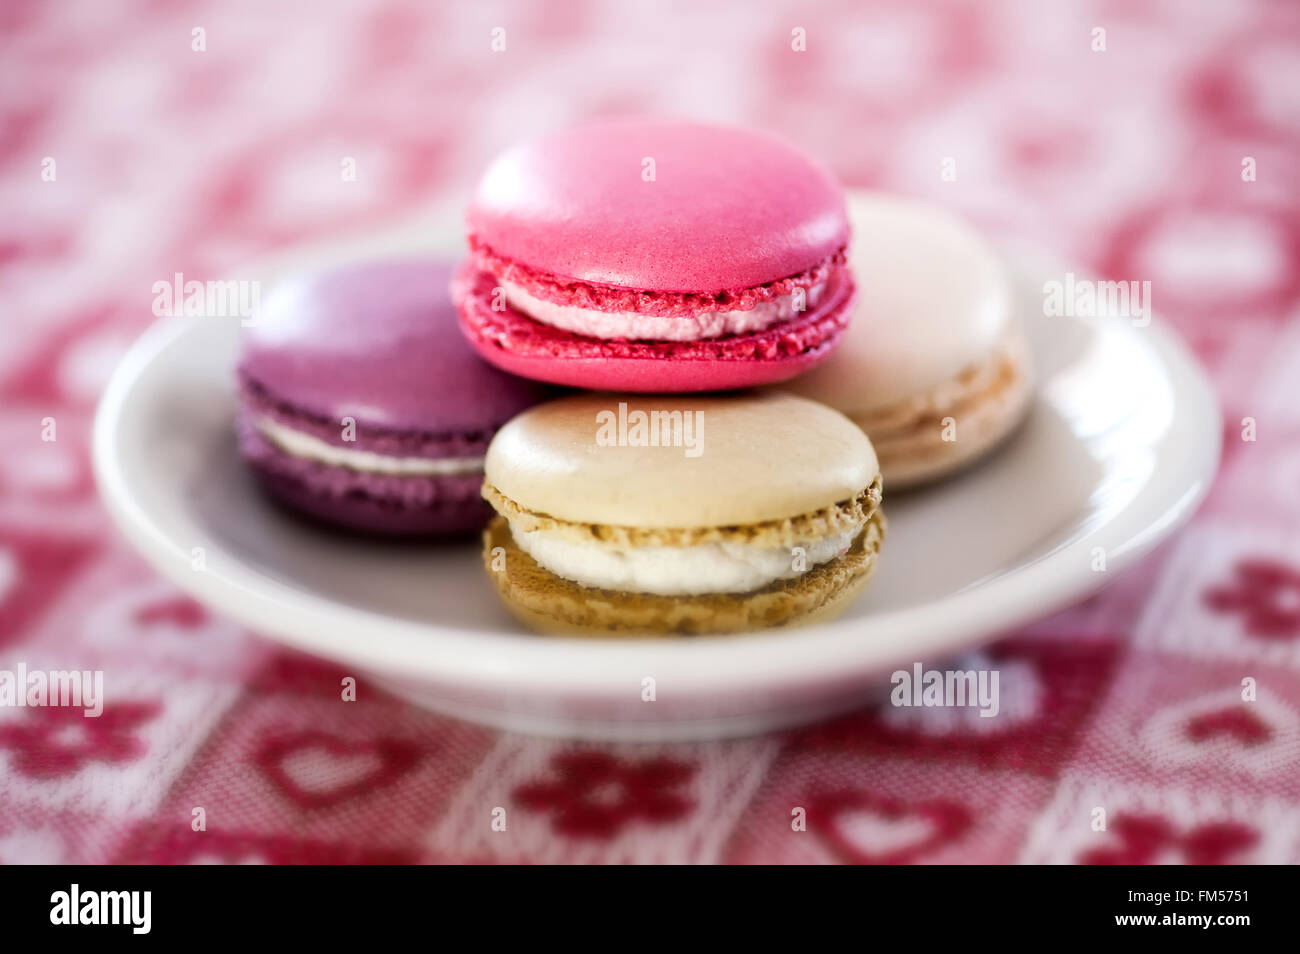 Plate of colorful macaroons made with egg-white, almonds and filled with butter cream - Stock Image